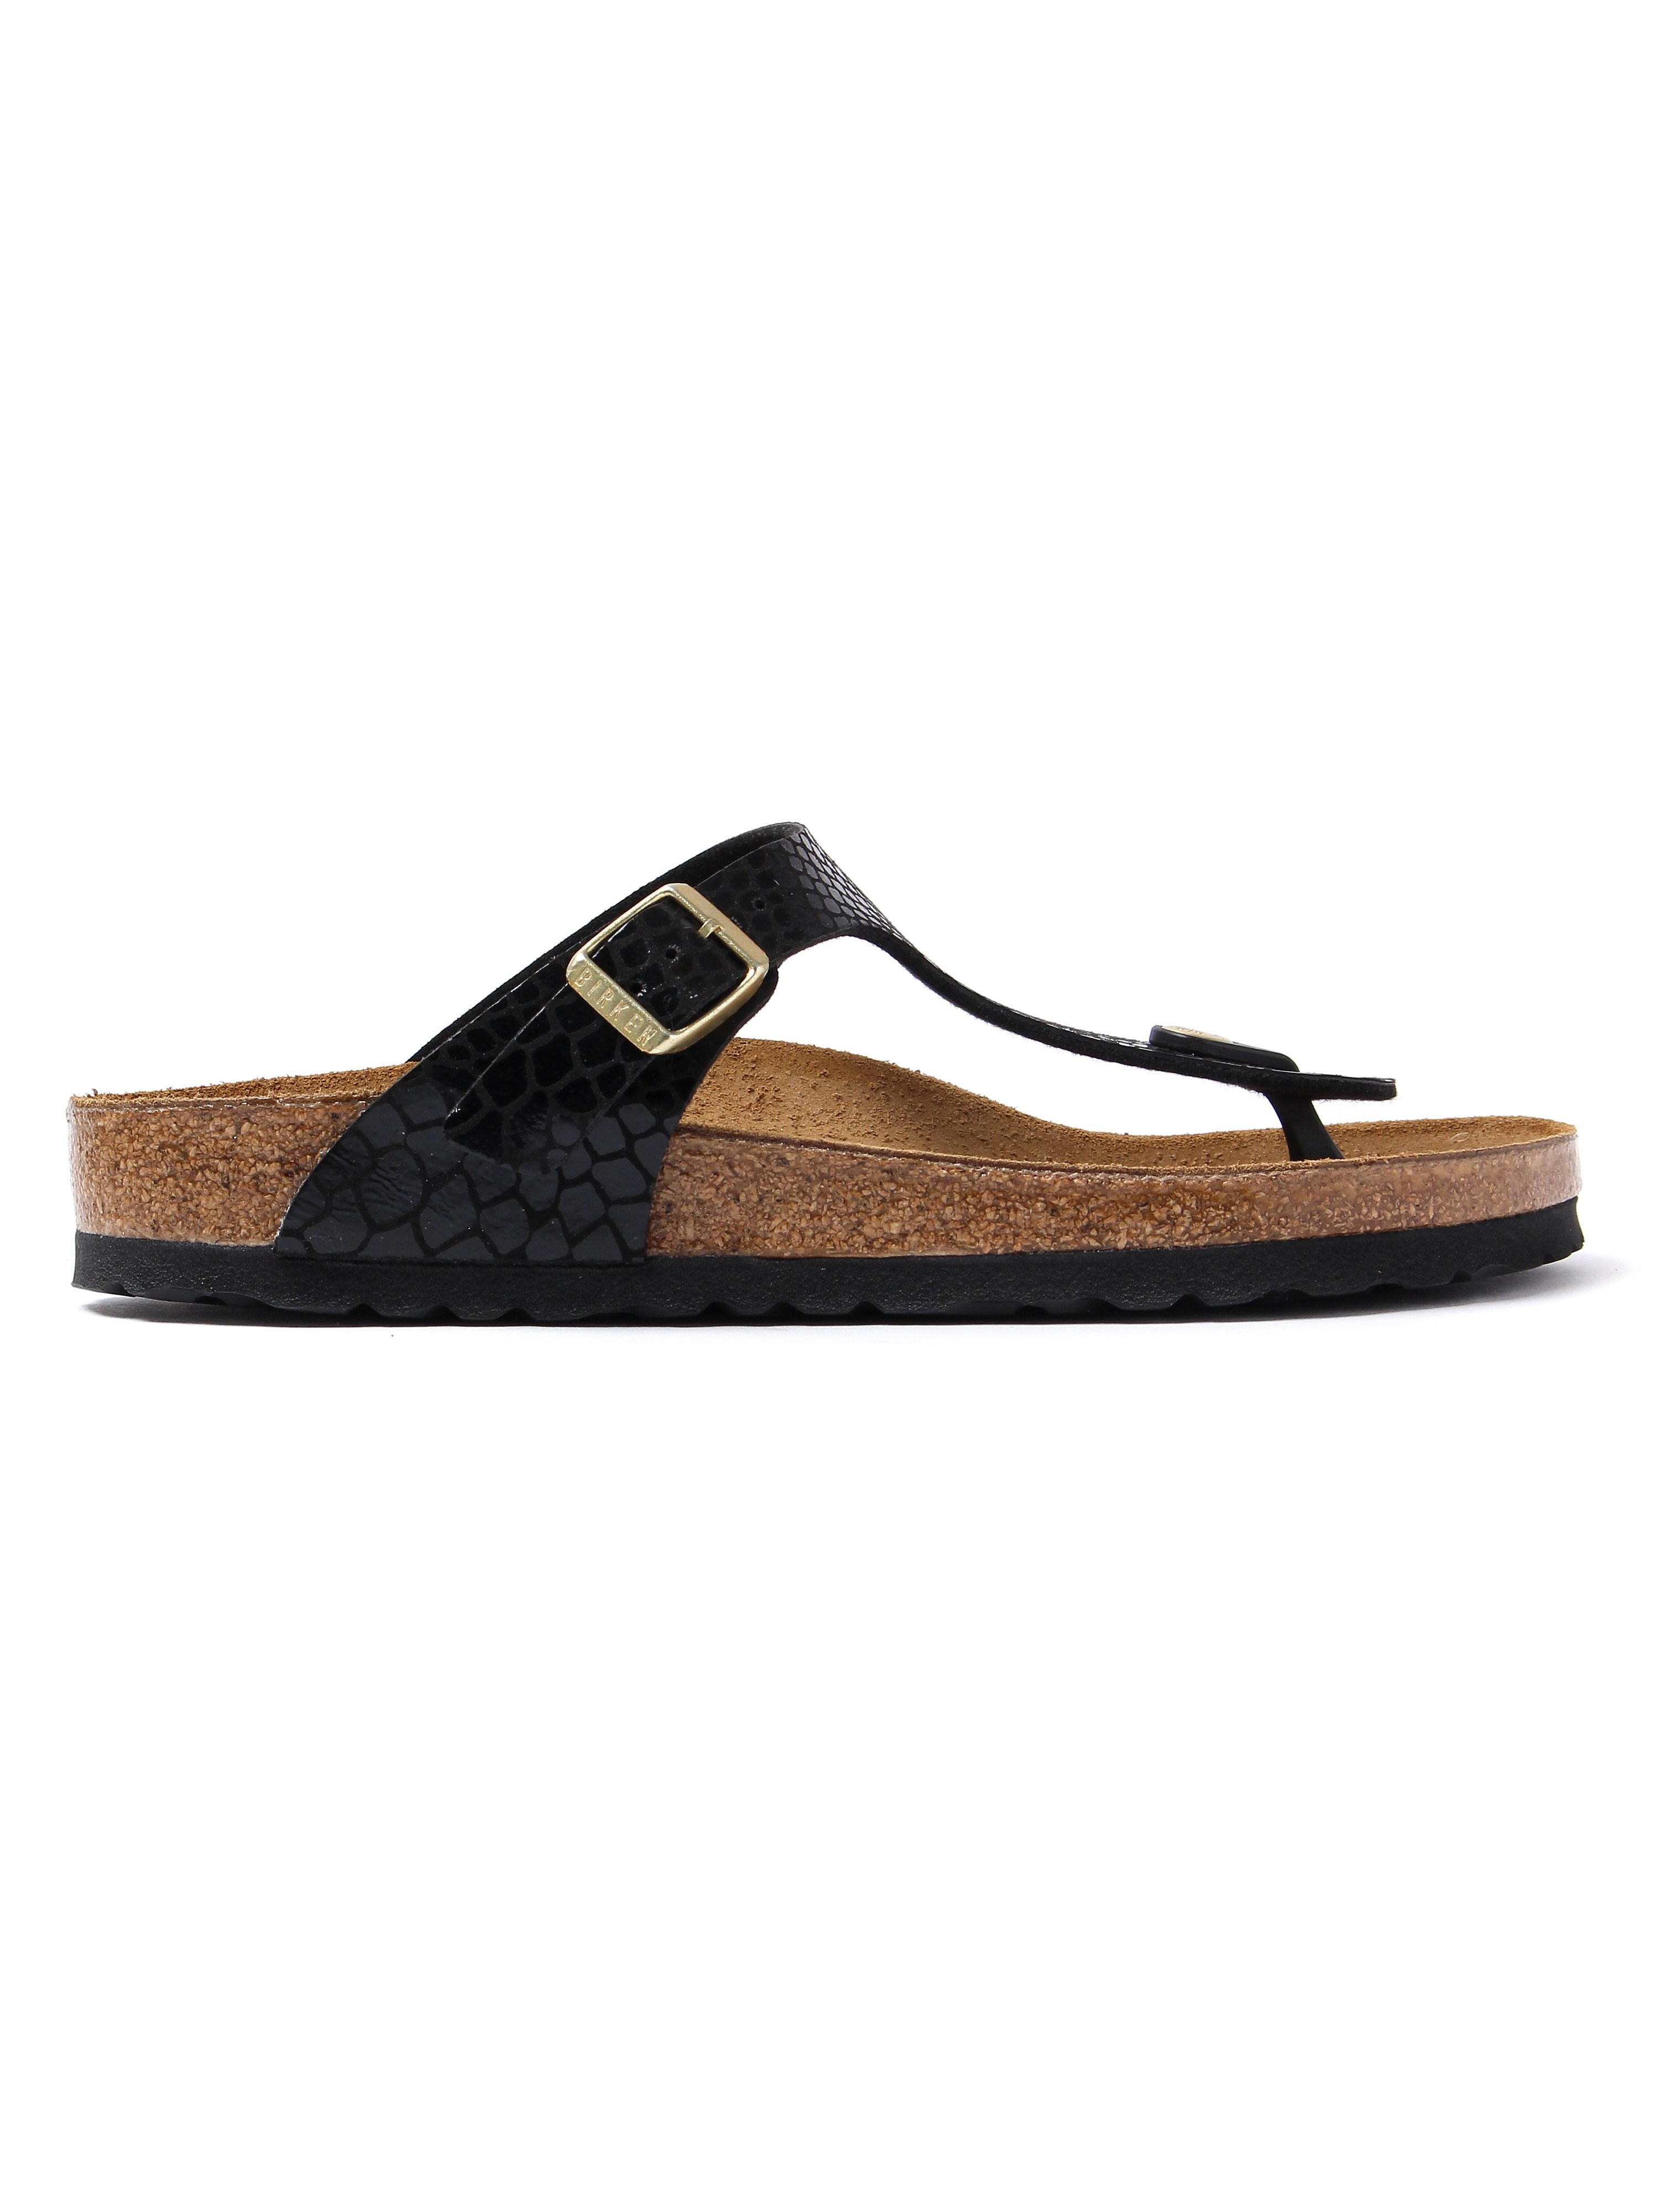 Birkenstock Women's Gizeh Regular Fit Sandals - Black Snakeskin